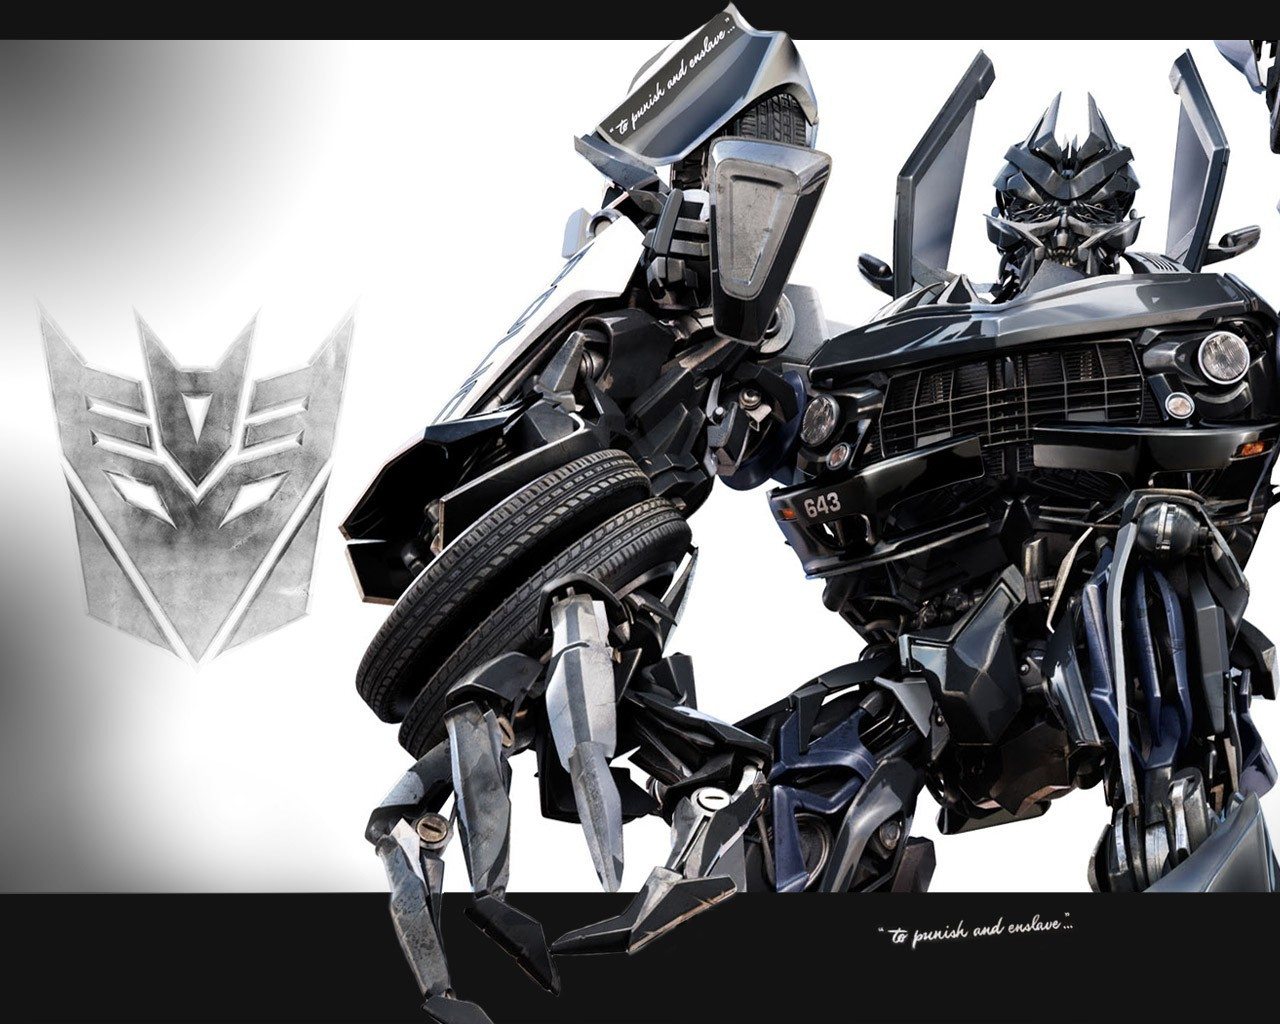 pc wallpapers: transformers 3 wallpapers for iphone